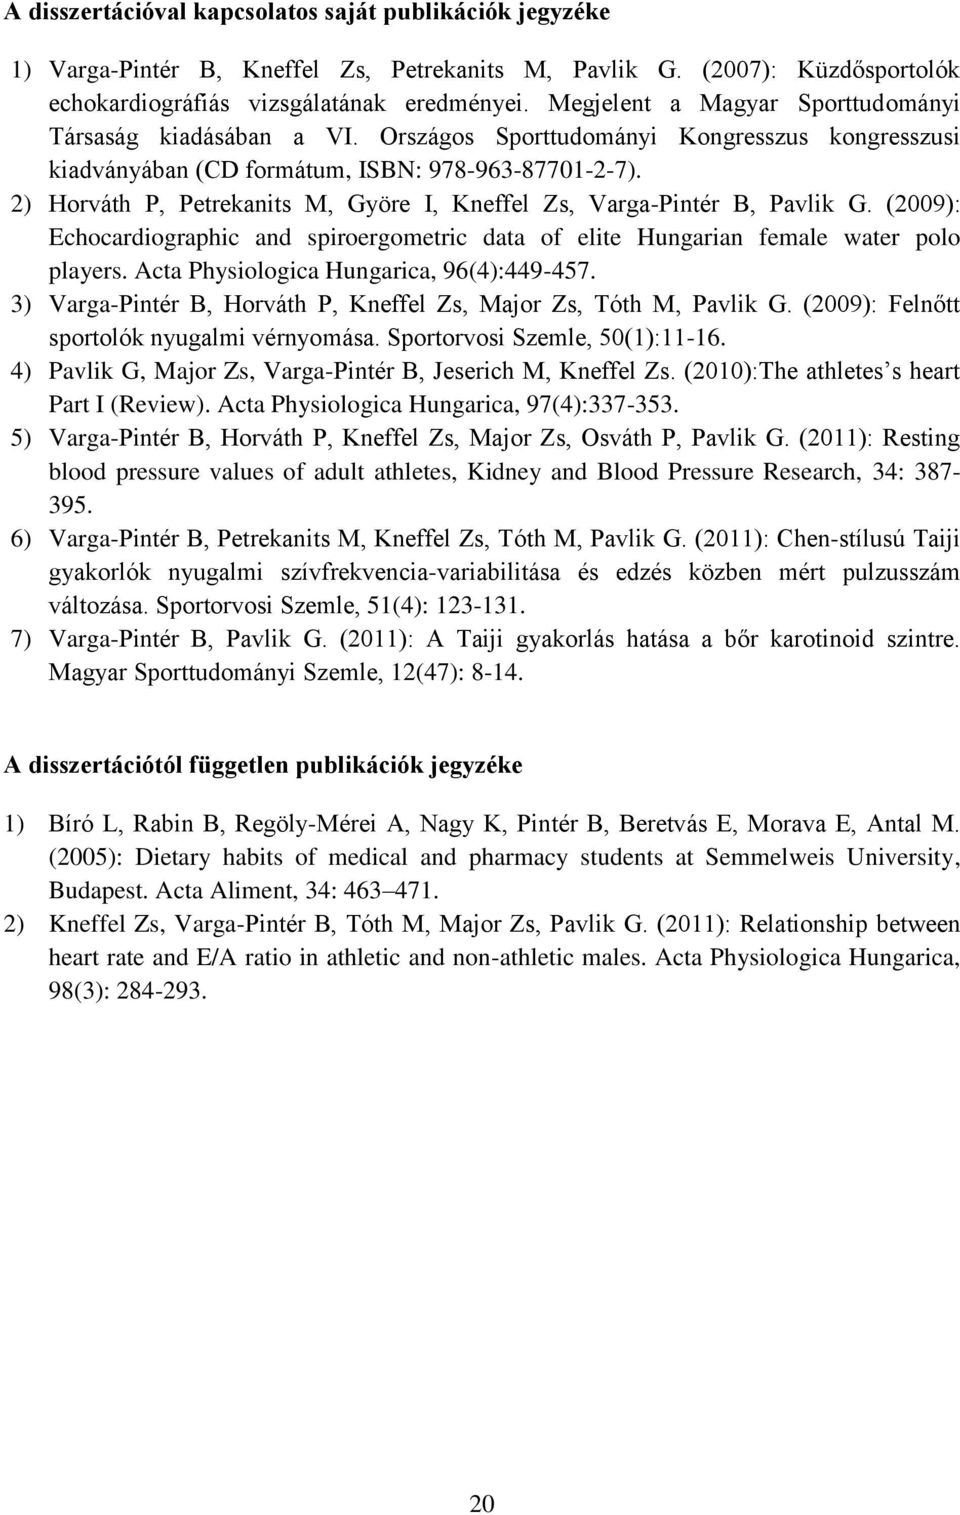 2) Horváth P, Petrekanits M, Györe I, Kneffel Zs, Varga-Pintér B, Pavlik G. (2009): Echocardiographic and spiroergometric data of elite Hungarian female water polo players.